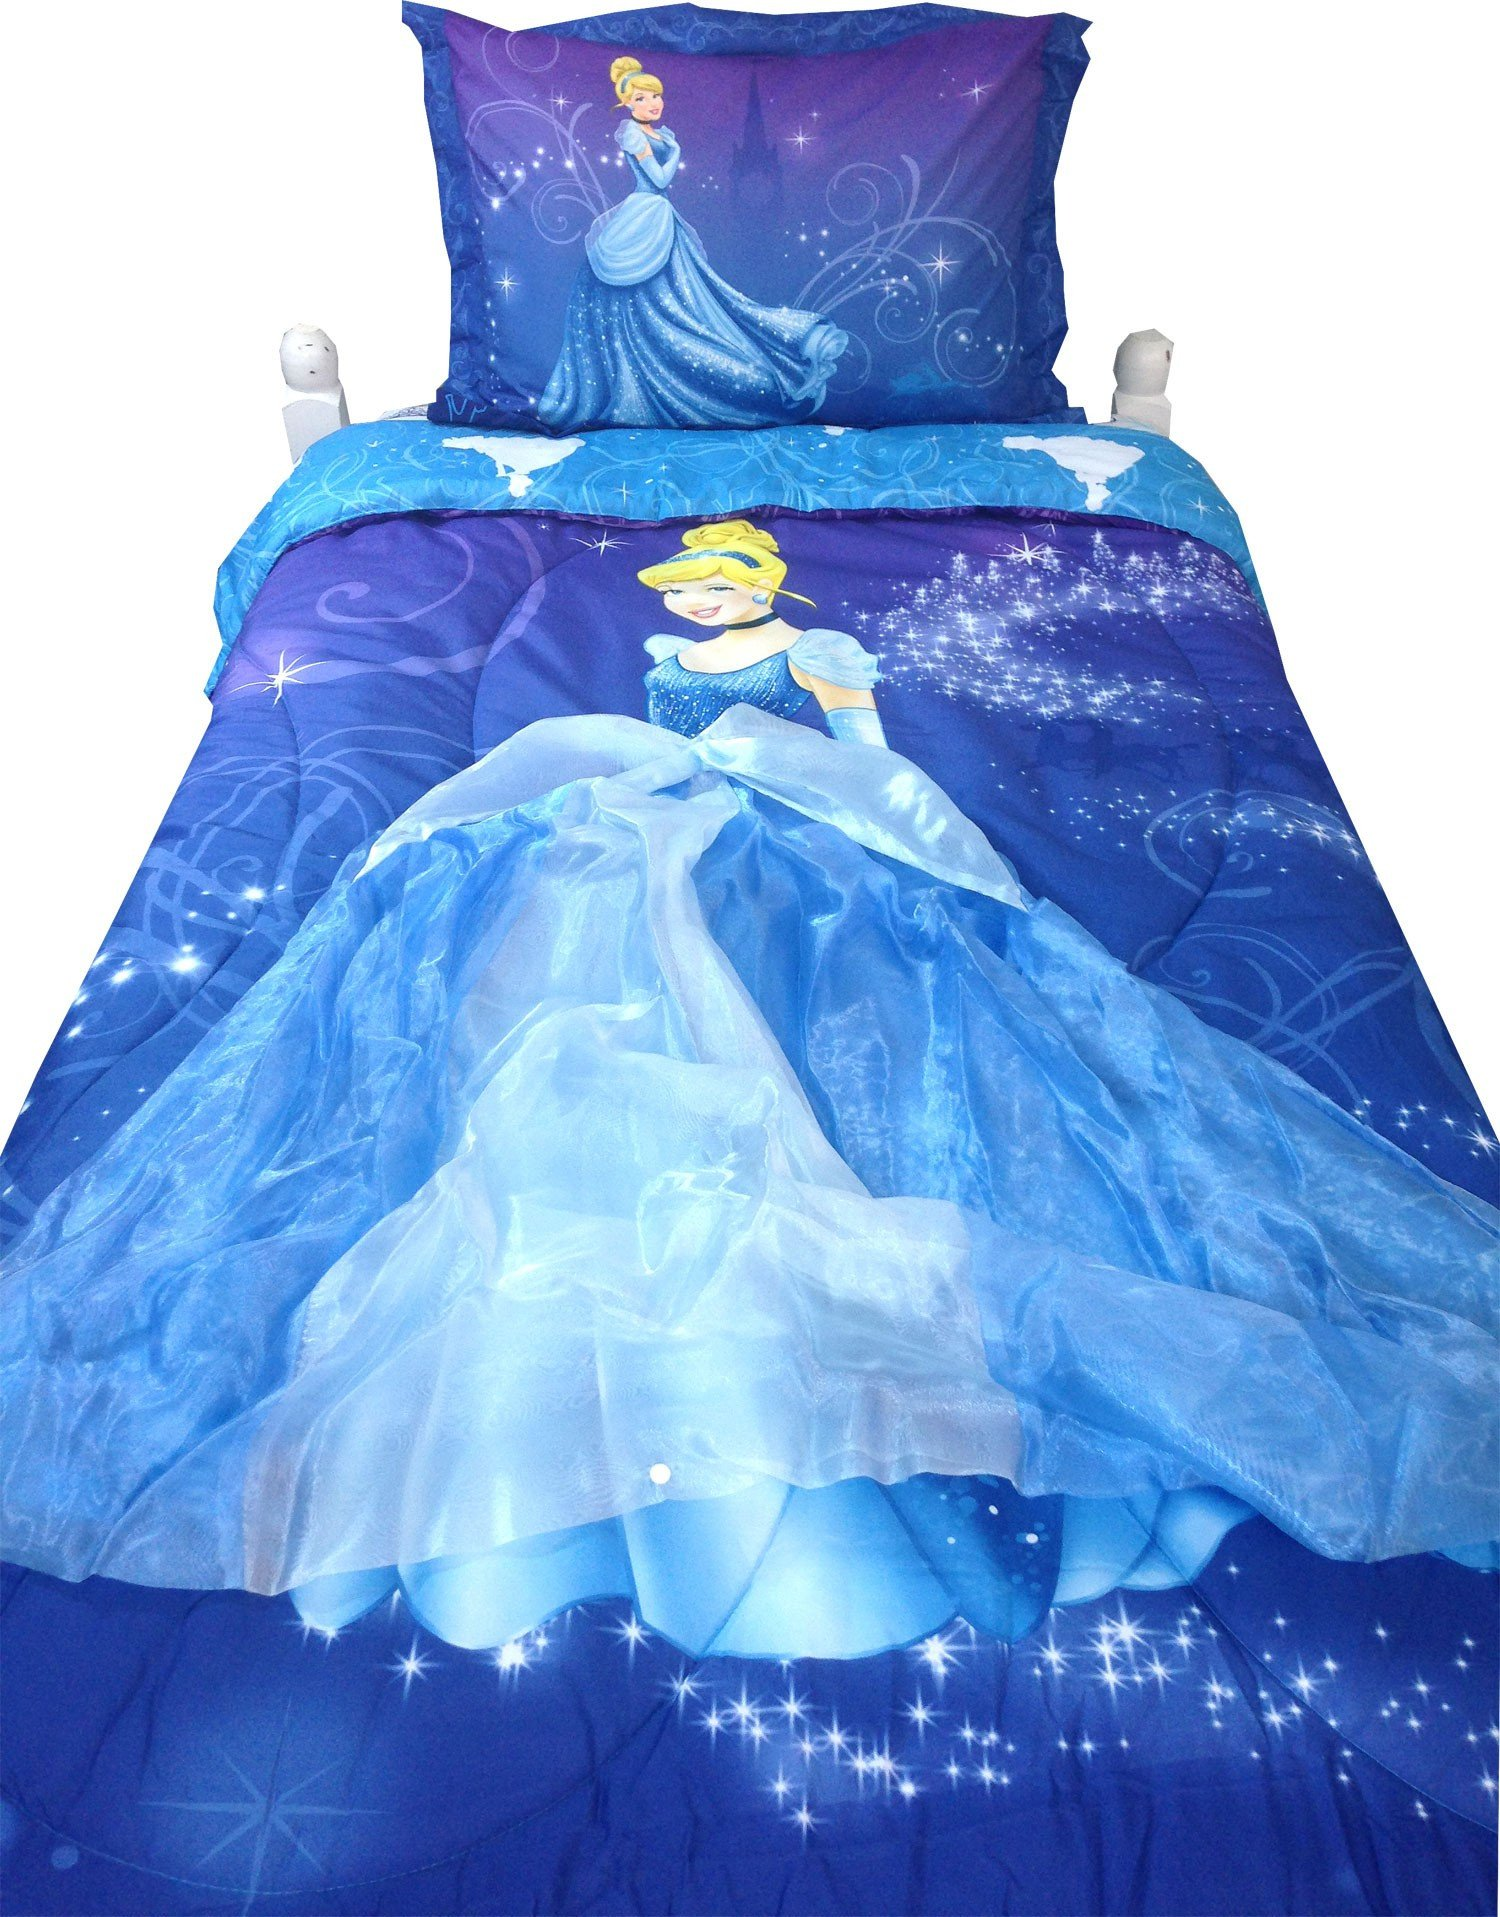 Disney Princess Bedroom Set Awesome Disney Princess Twin Bedding Set Cinderella Bedroom